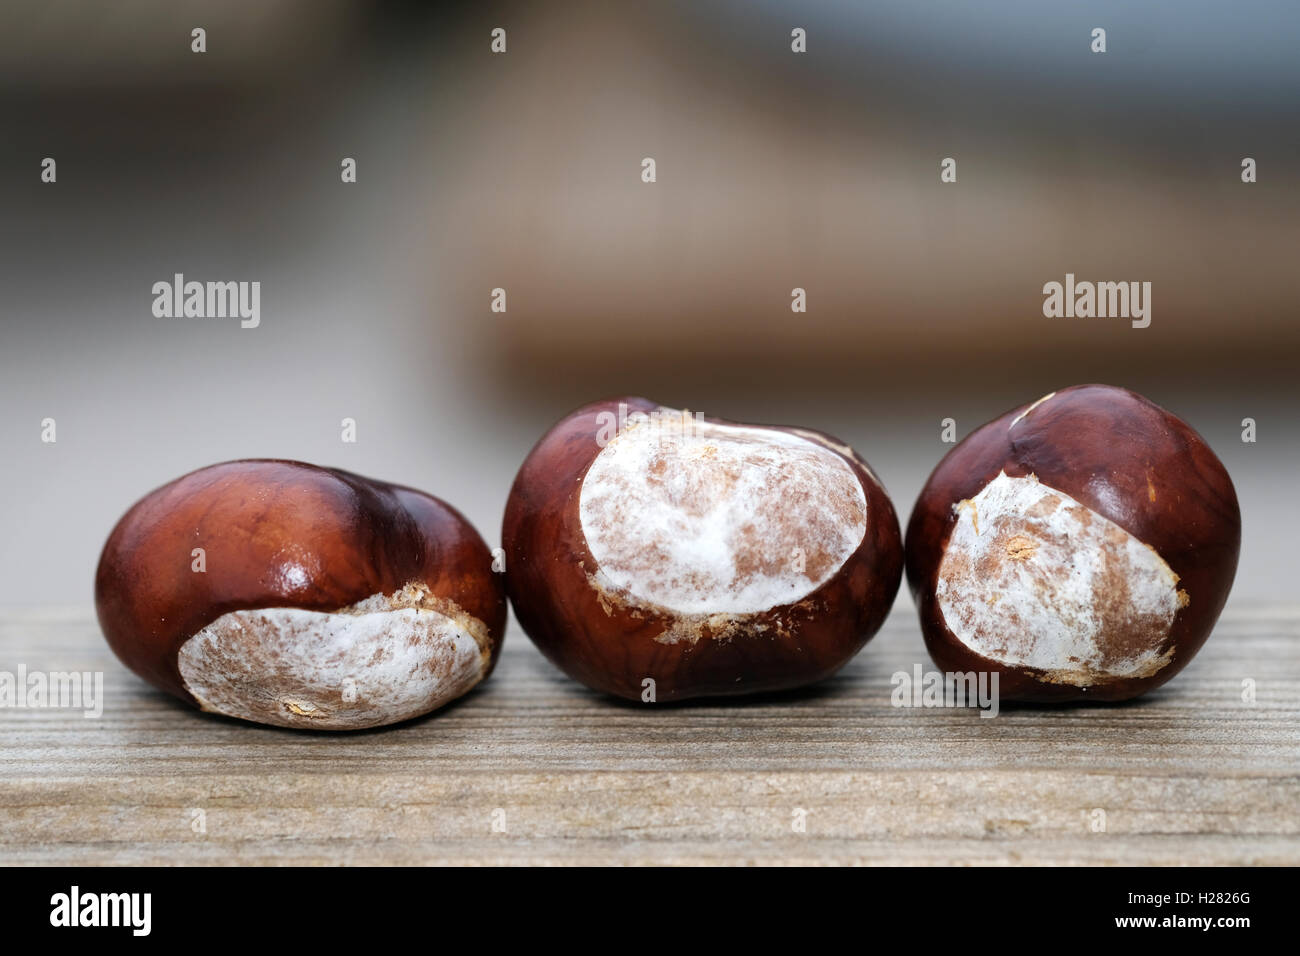 A group of three conkers lying on a wooden bench - Stock Image